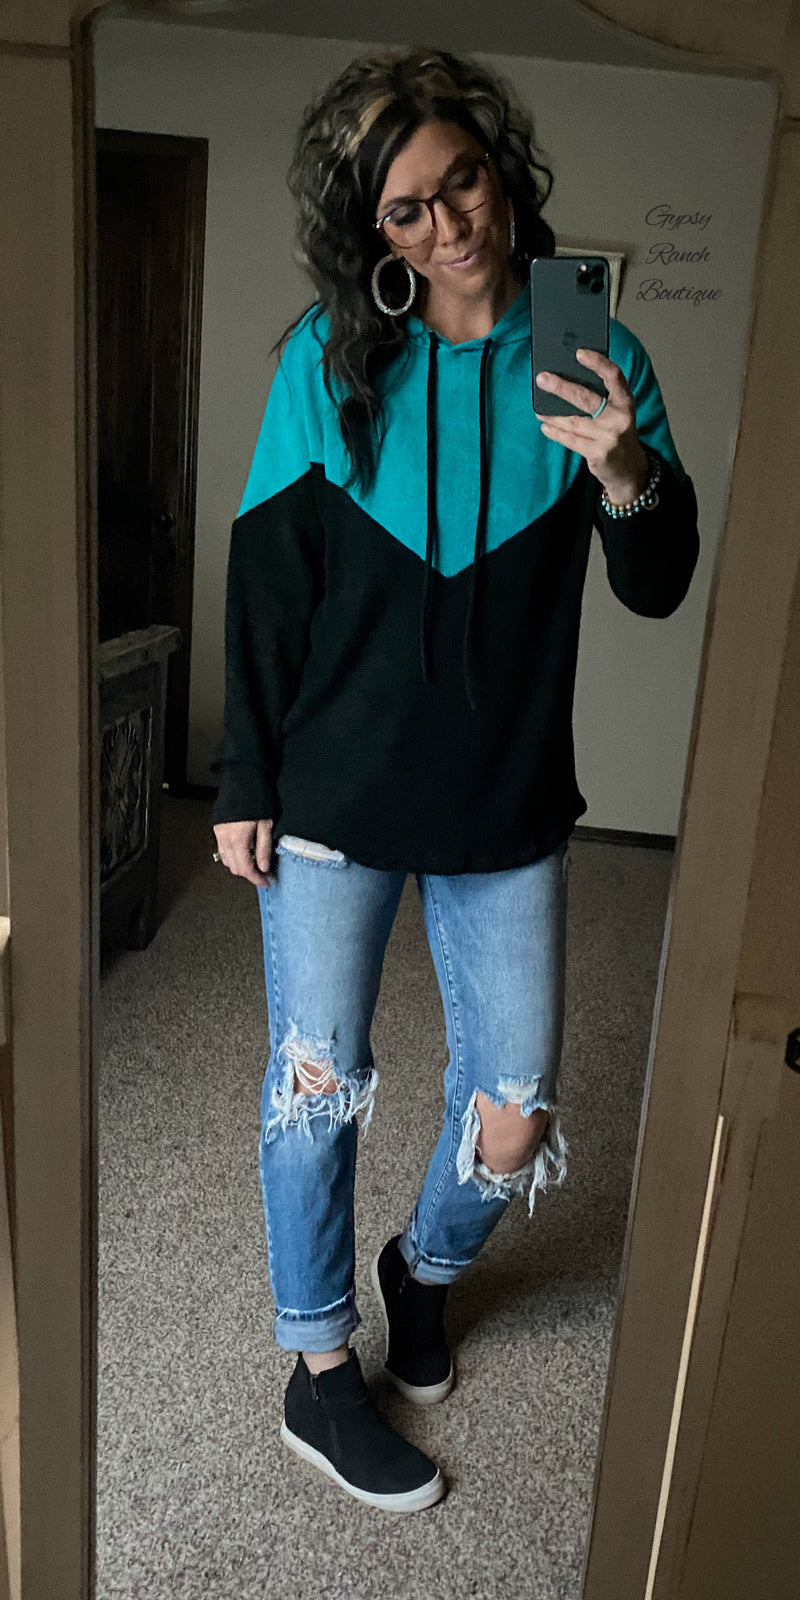 Tulsa Turquoise & Black Hooded Pullover Top - Also in Plus Size